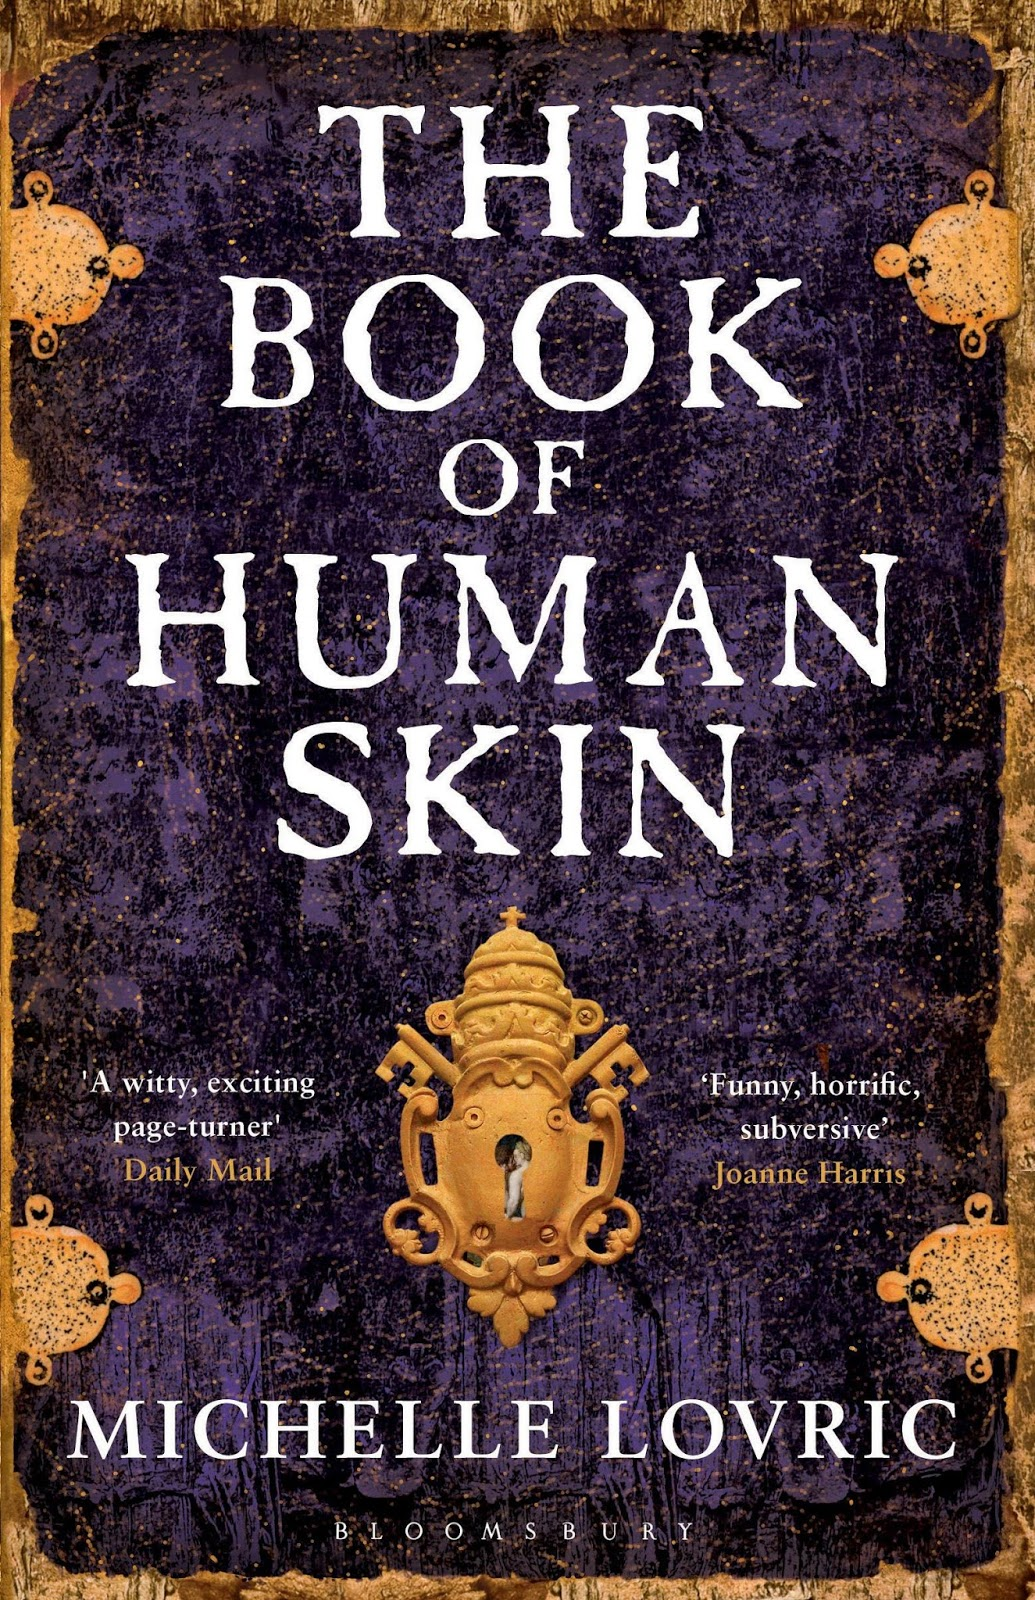 Book Covered In Human Skin ~ The history girls slow crows and thin geese